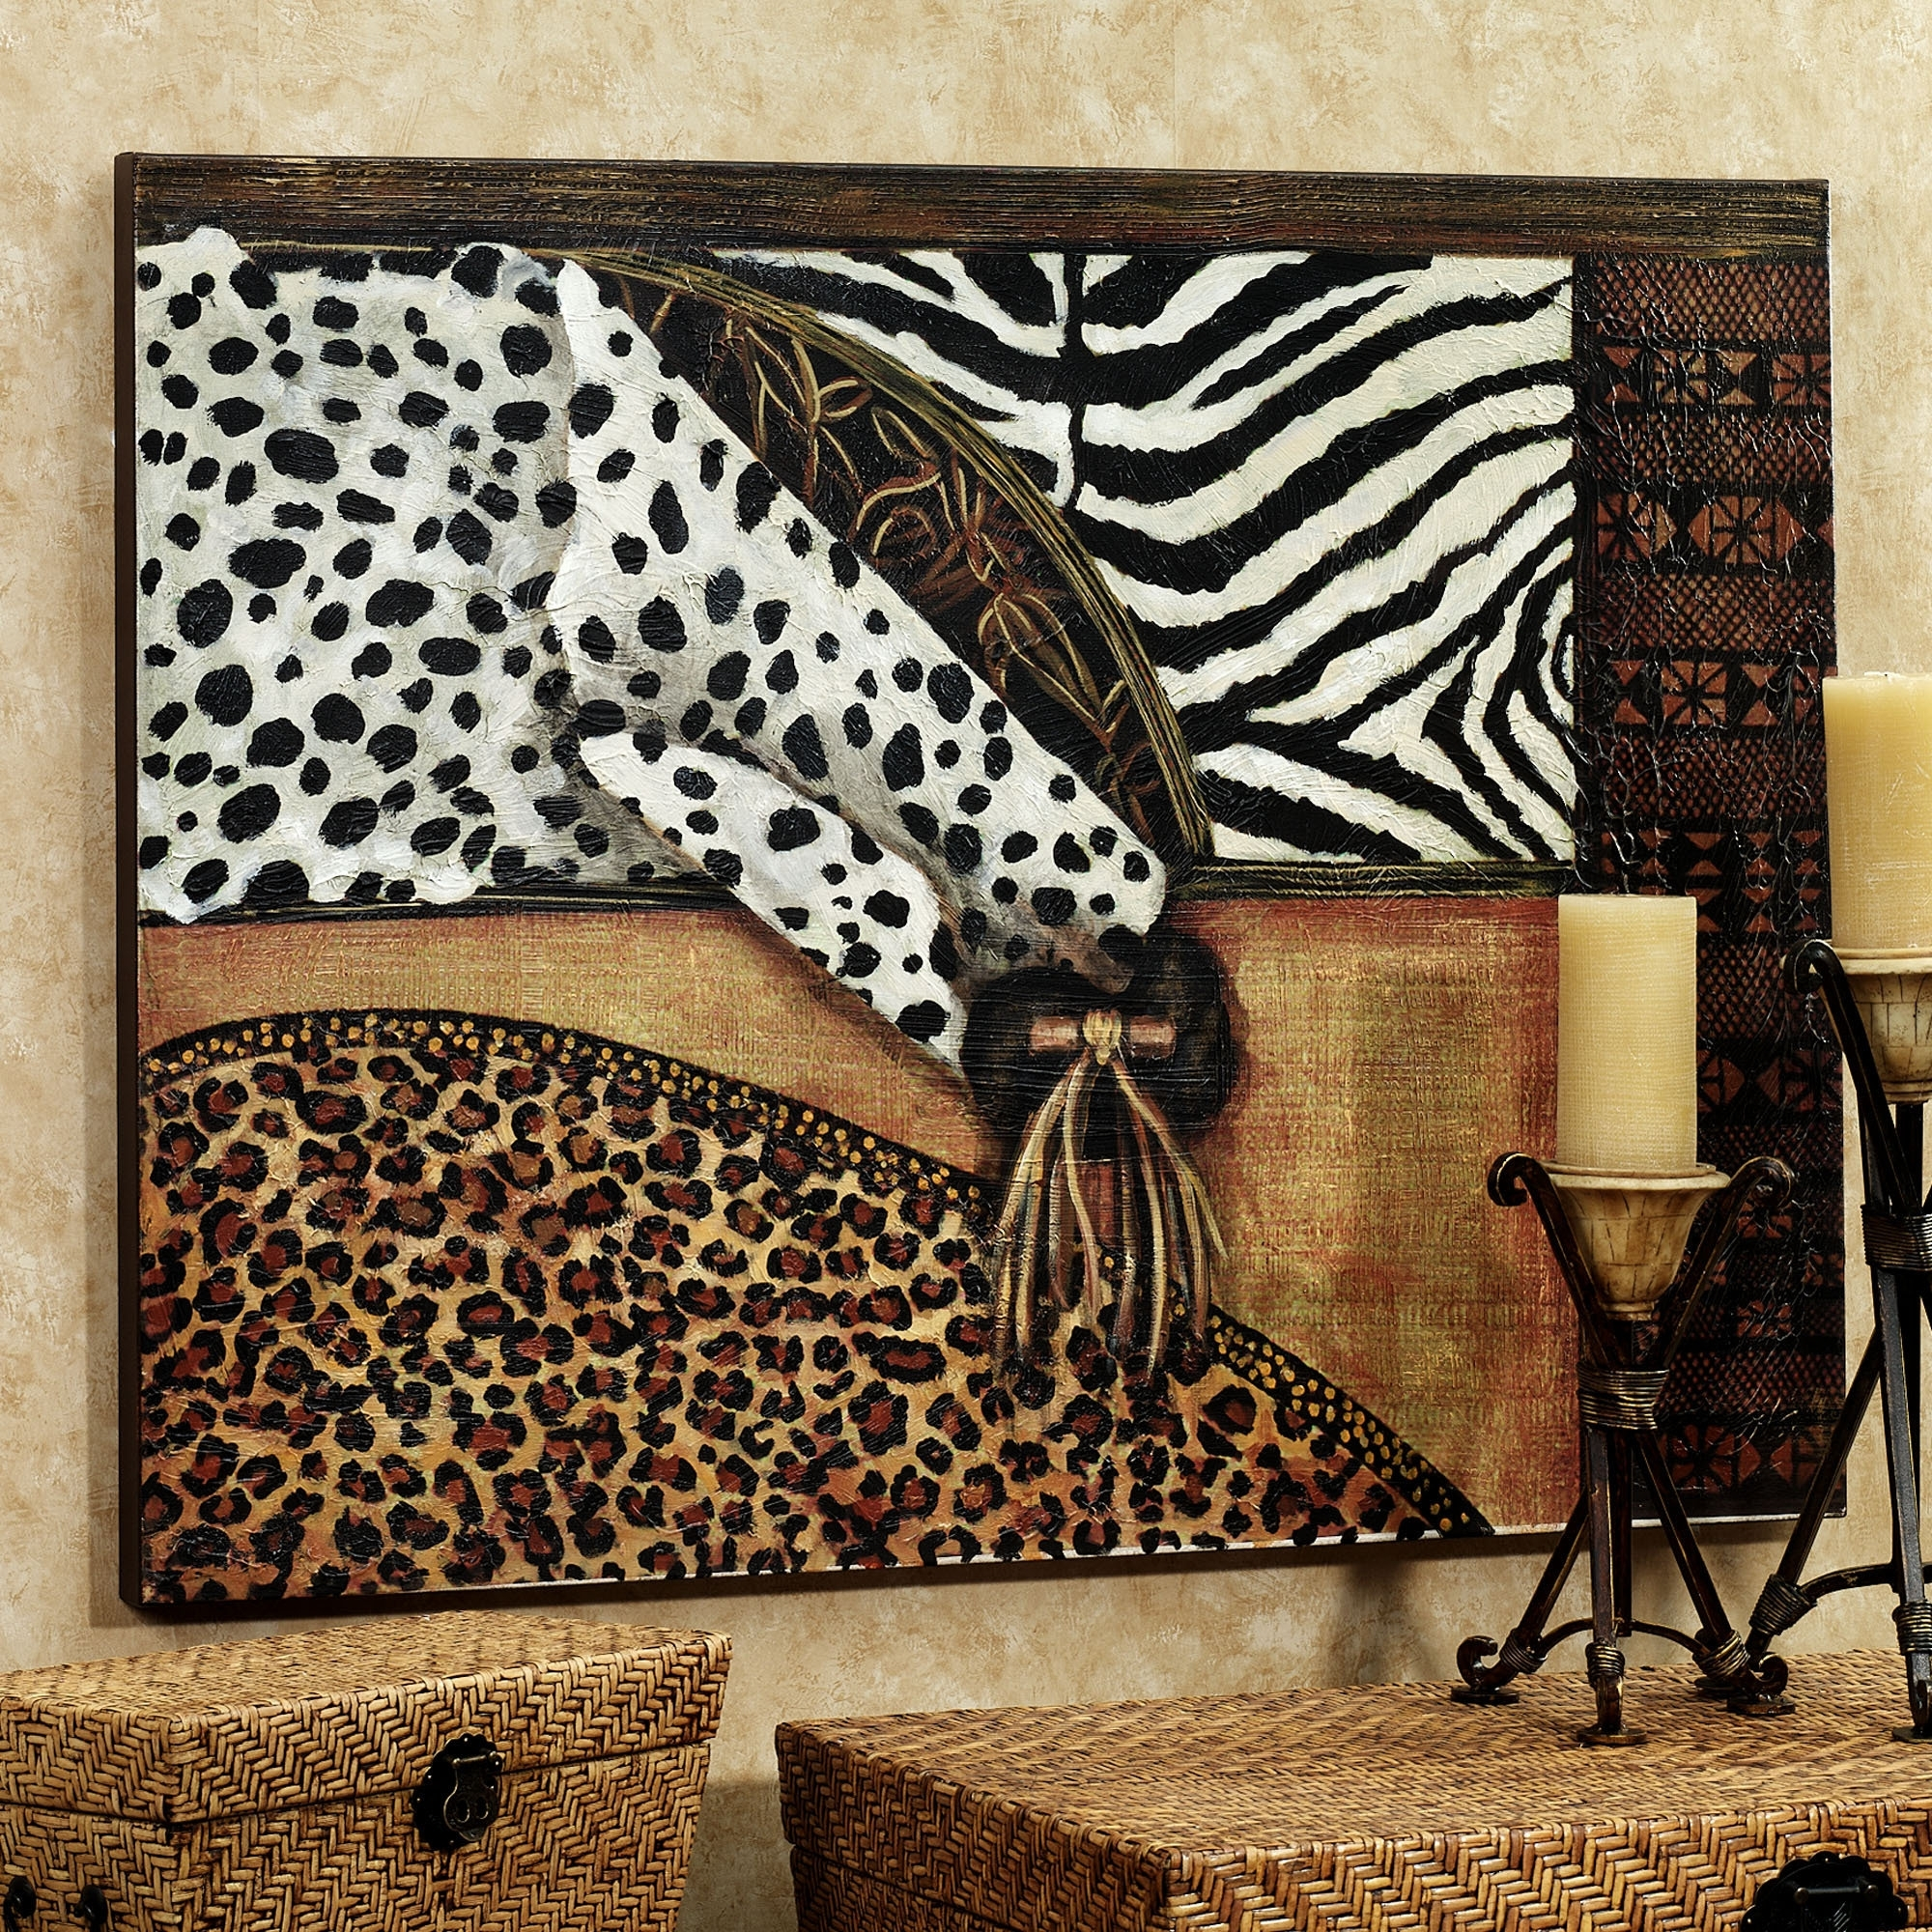 African Wall Decor Superb African Wall Decor - Wall Decoration And in African Wall Art (Image 8 of 20)